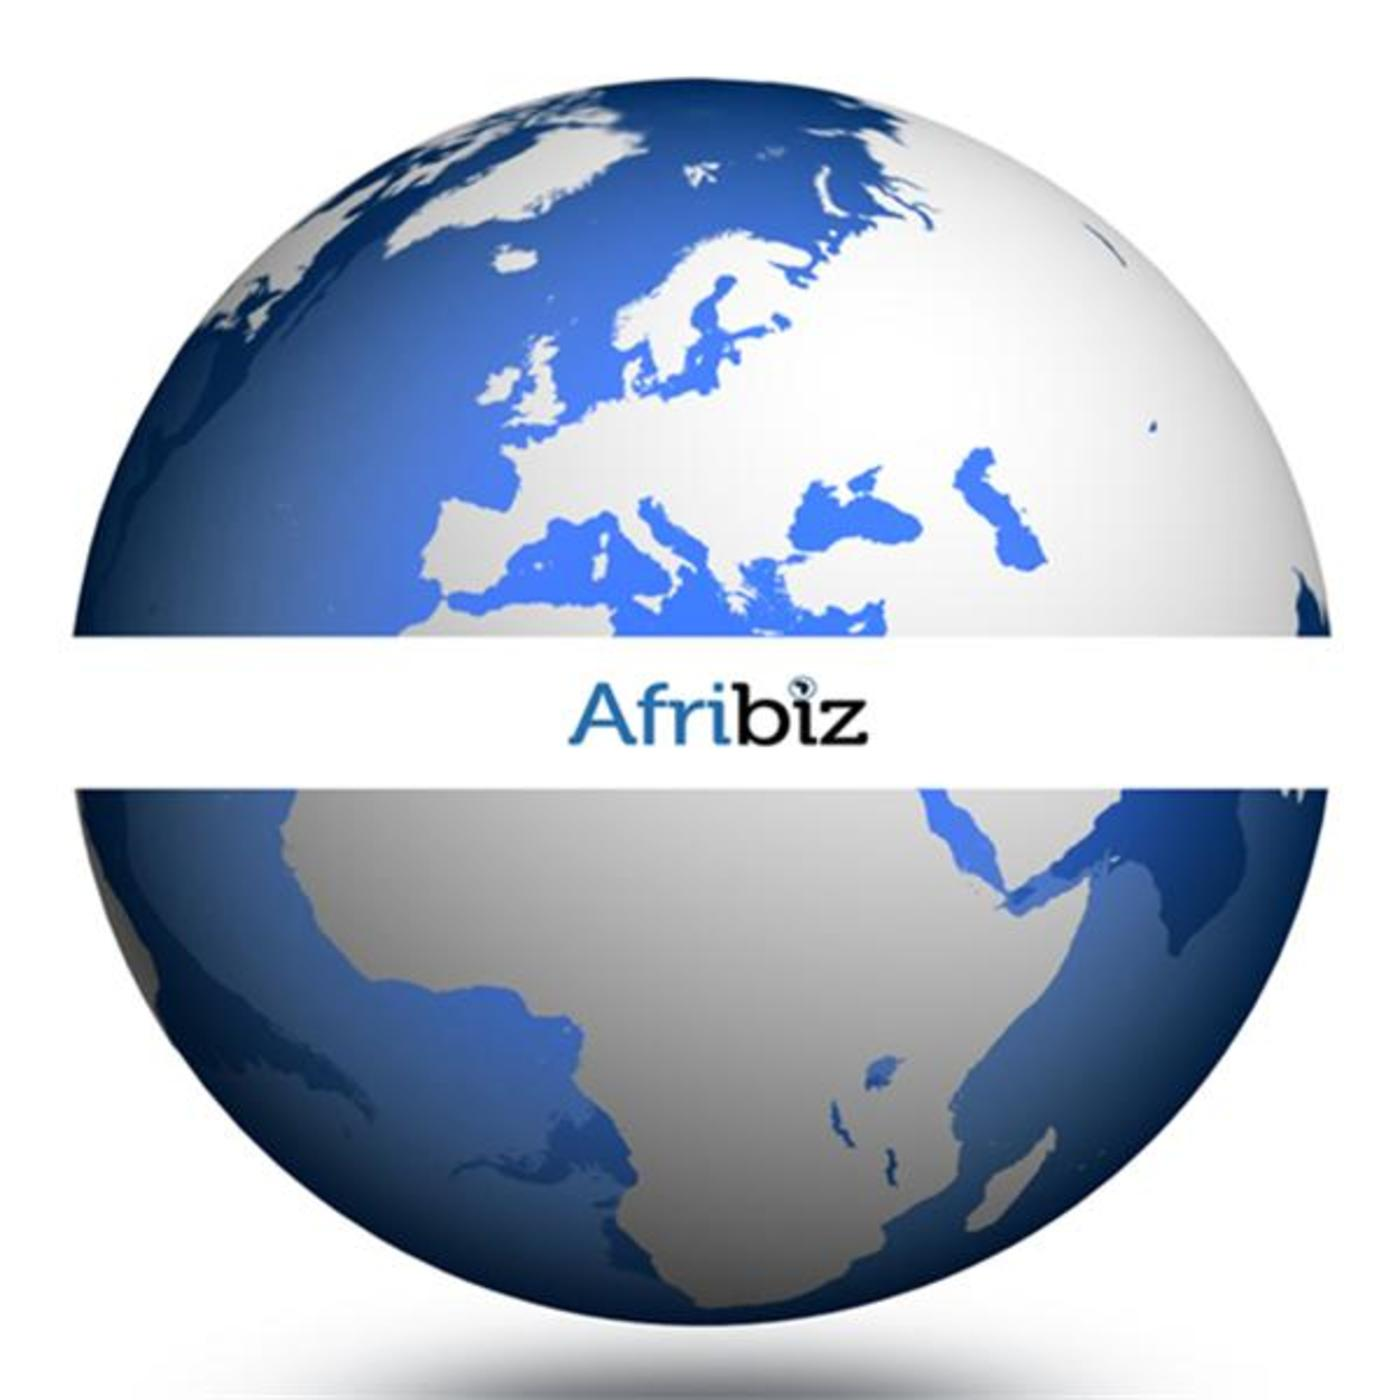 Afribiz: Business & Investment in Africa